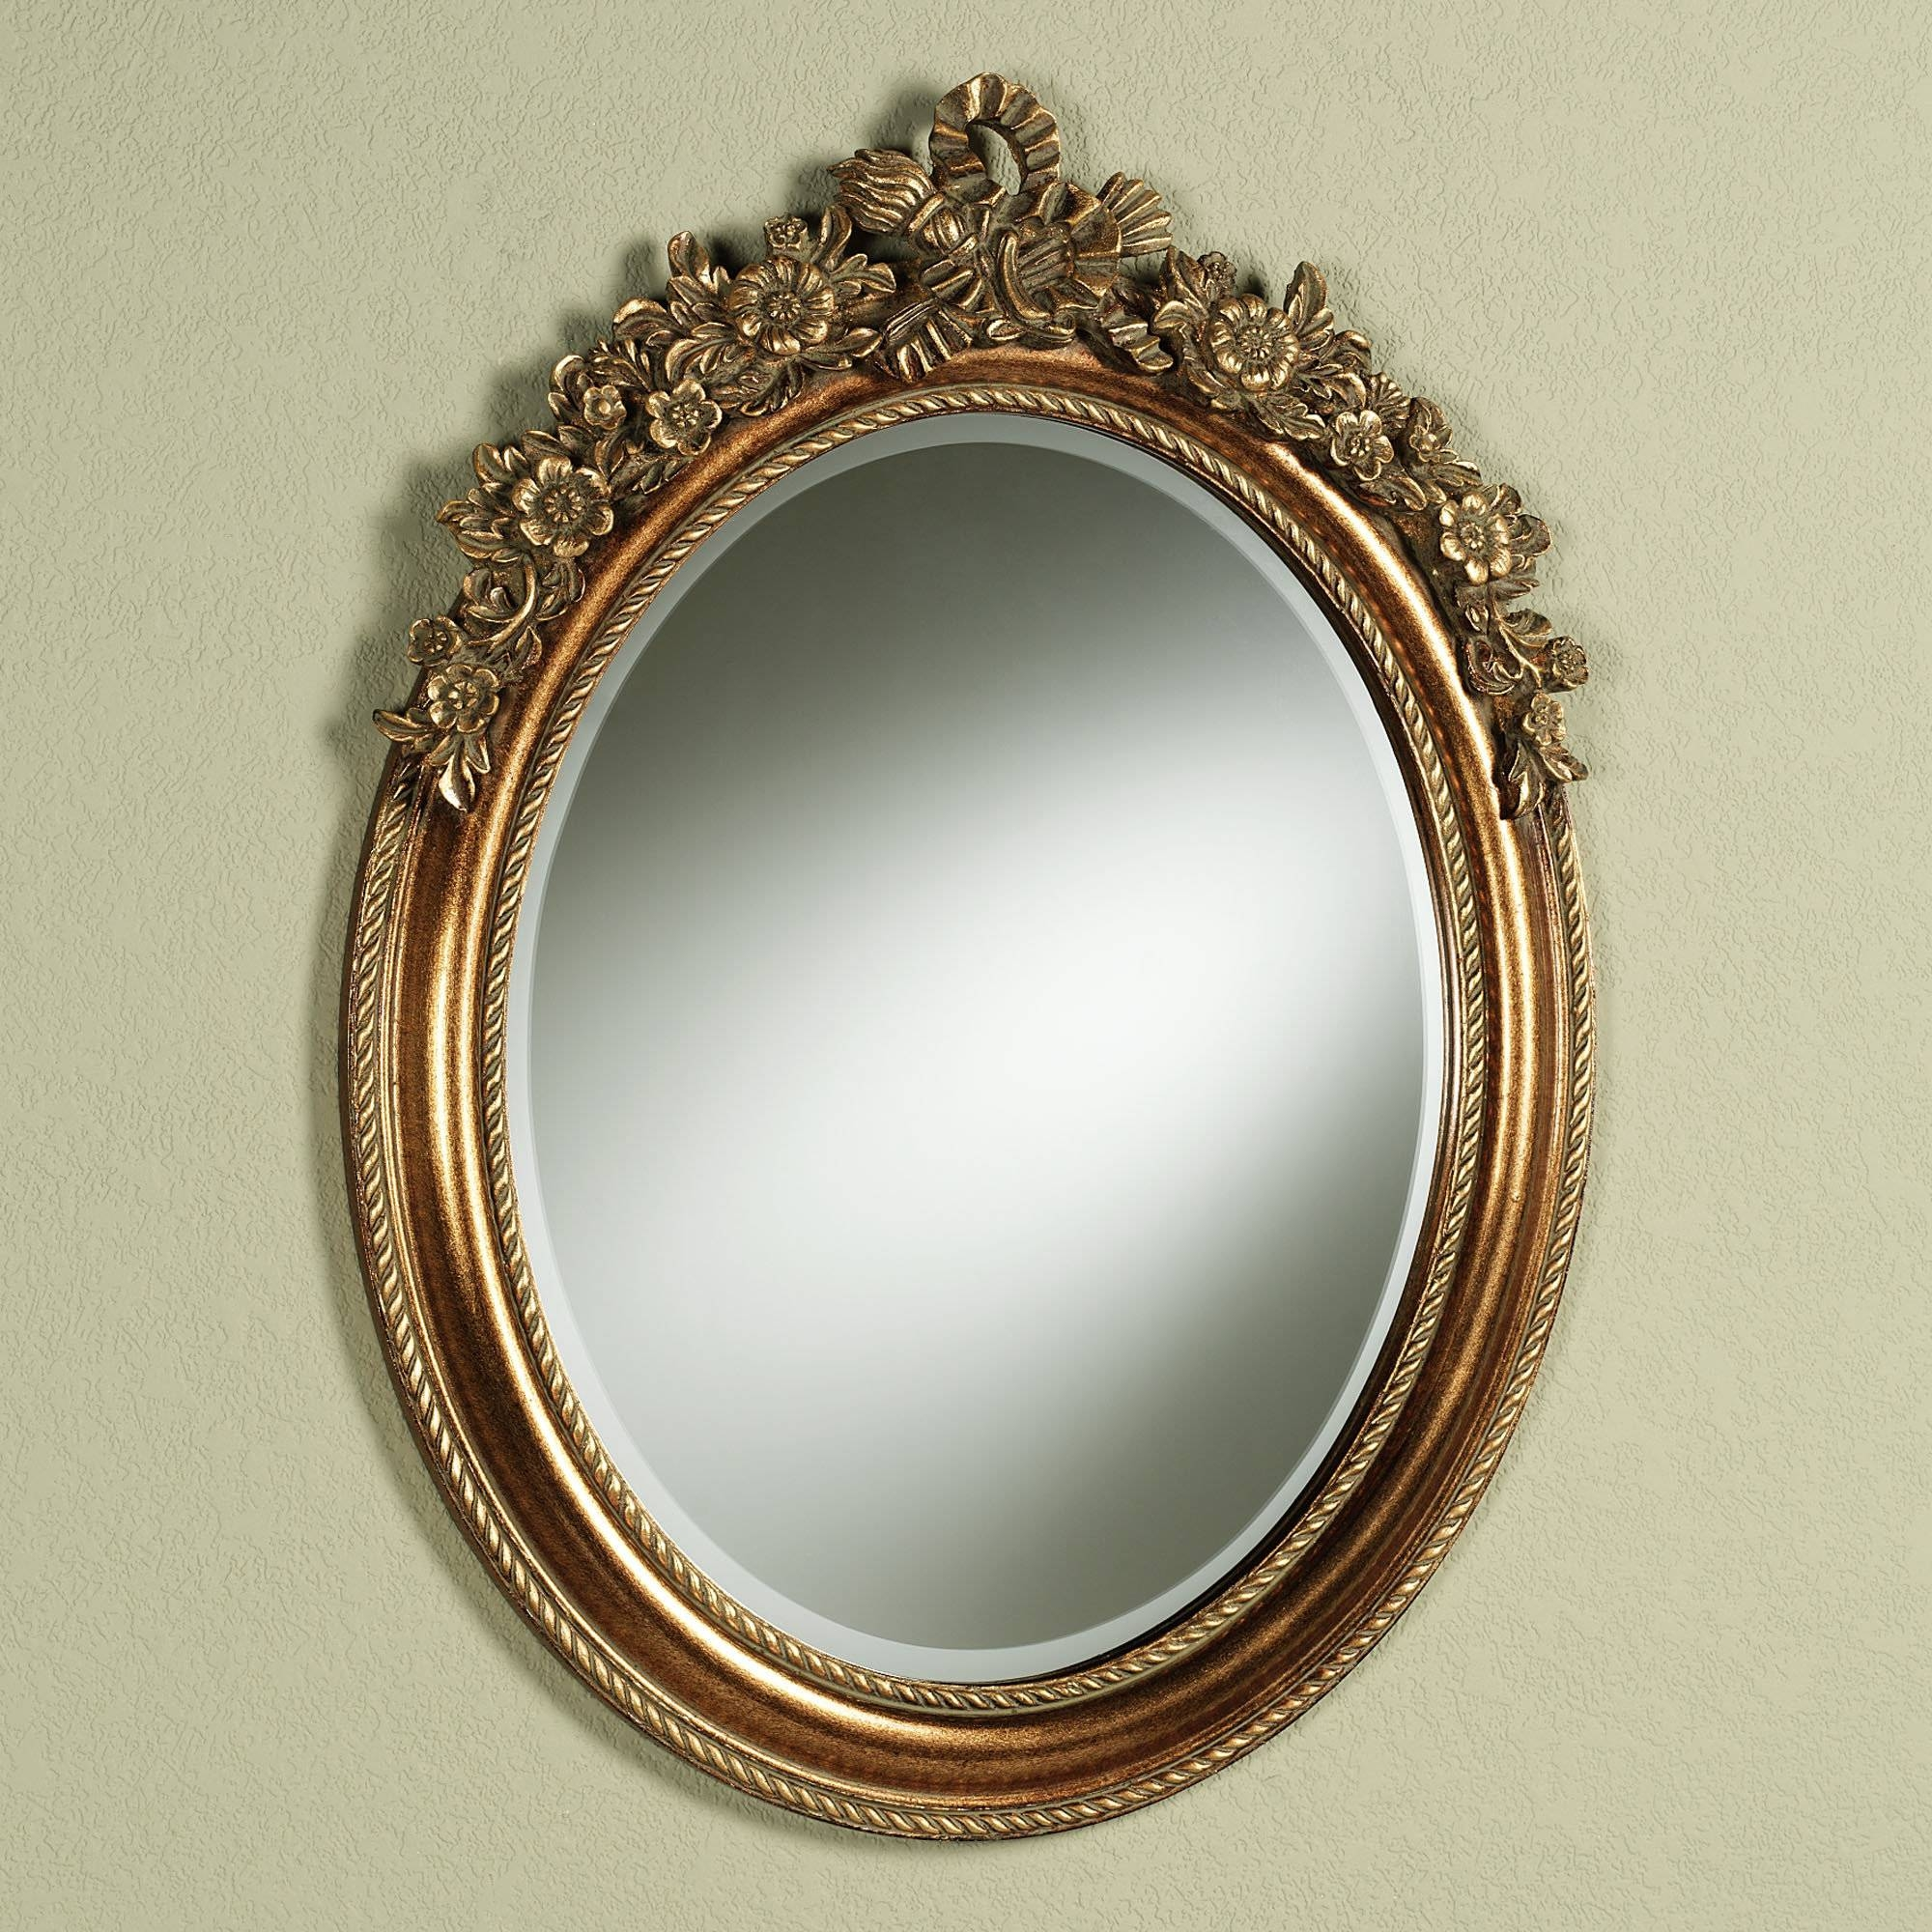 25 the best oval mirrors for walls small oval mirror large oval mirrors for walls oval wall mirror regarding oval mirrors for amipublicfo Gallery